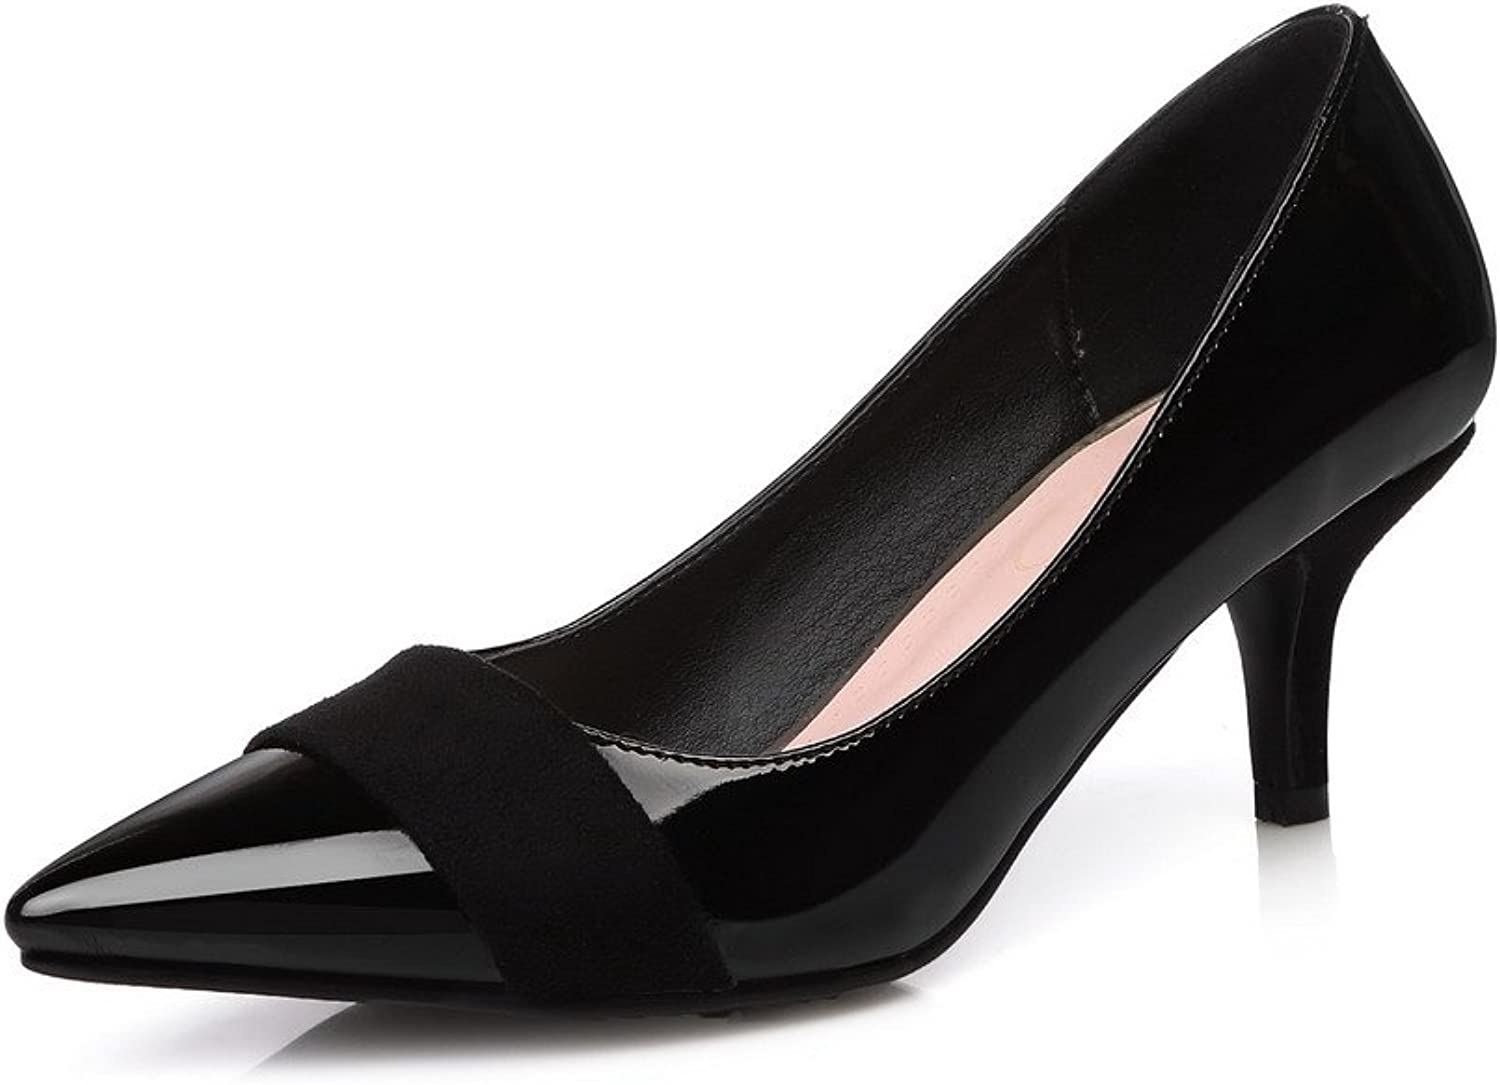 AmoonyFashion Women's Kitten-Heels Patent Leather Pull-on Pointed Closed Toe Pumps-shoes